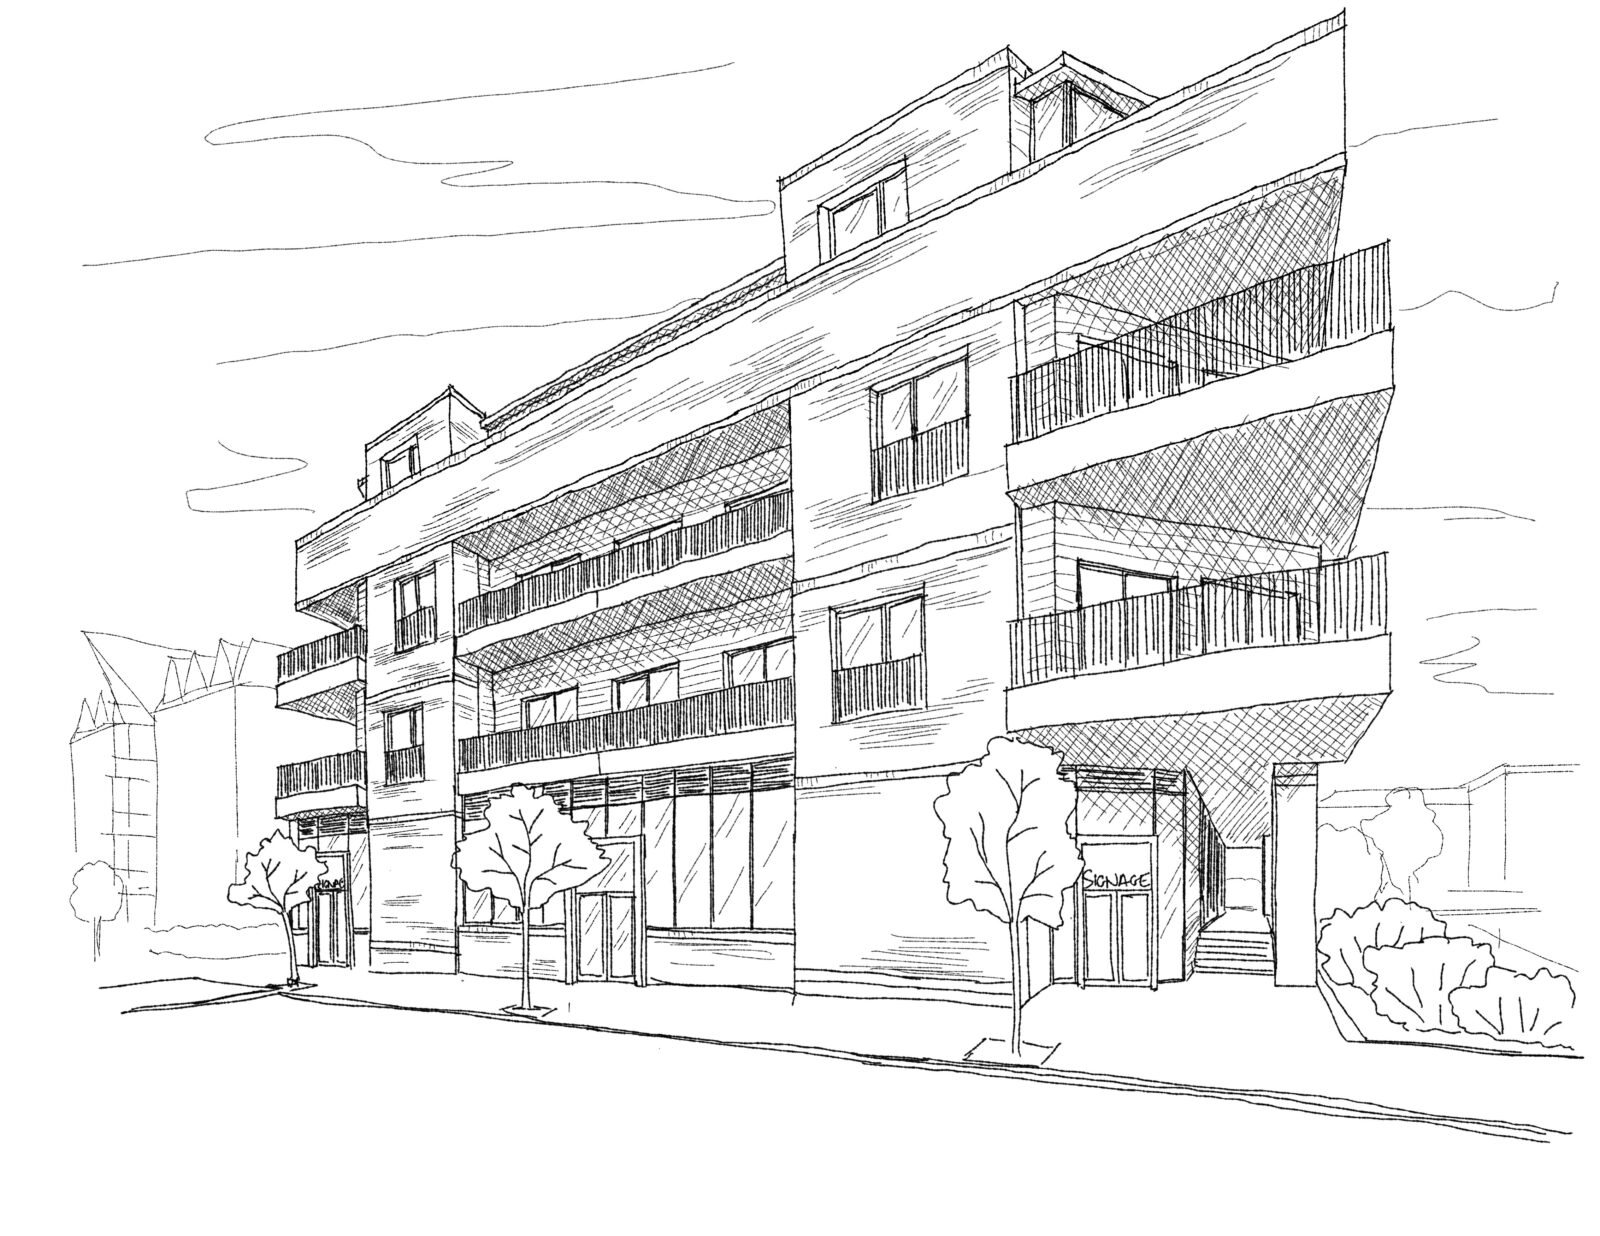 Sketch of the proposed Platinum House development